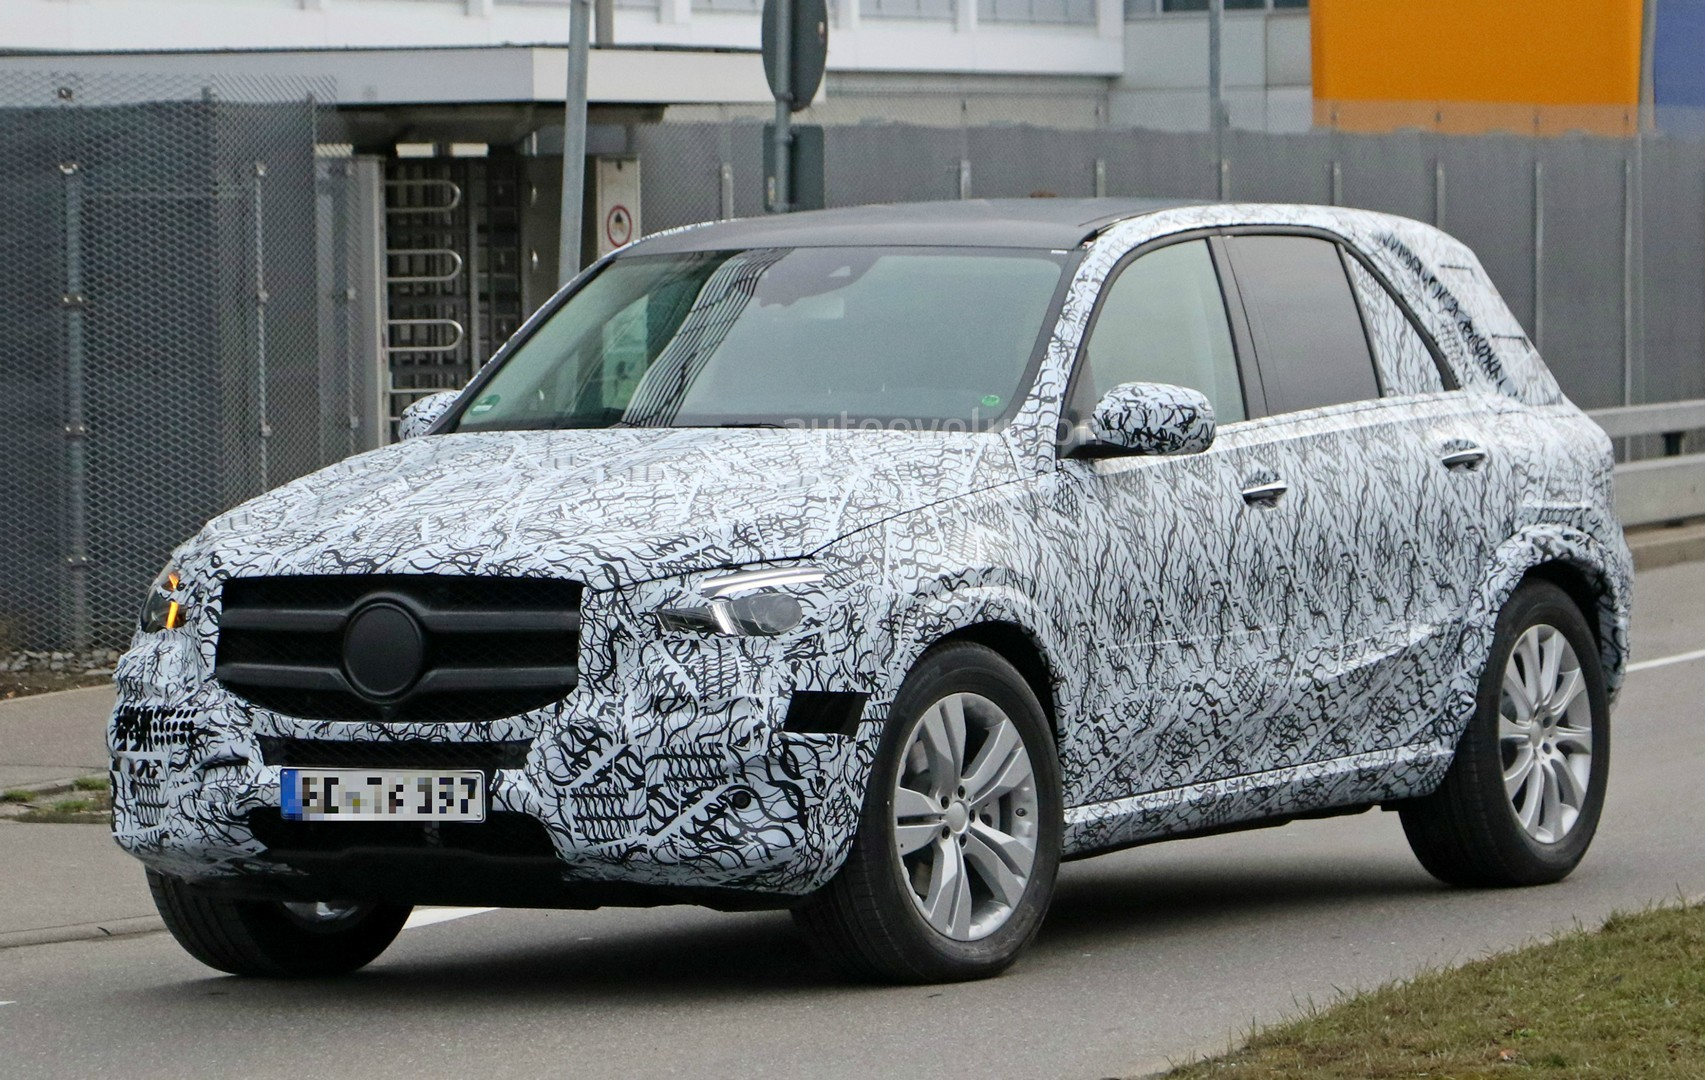 2019 mercedes benz gle reveals interior and production headlights in spyshots autoevolution. Black Bedroom Furniture Sets. Home Design Ideas